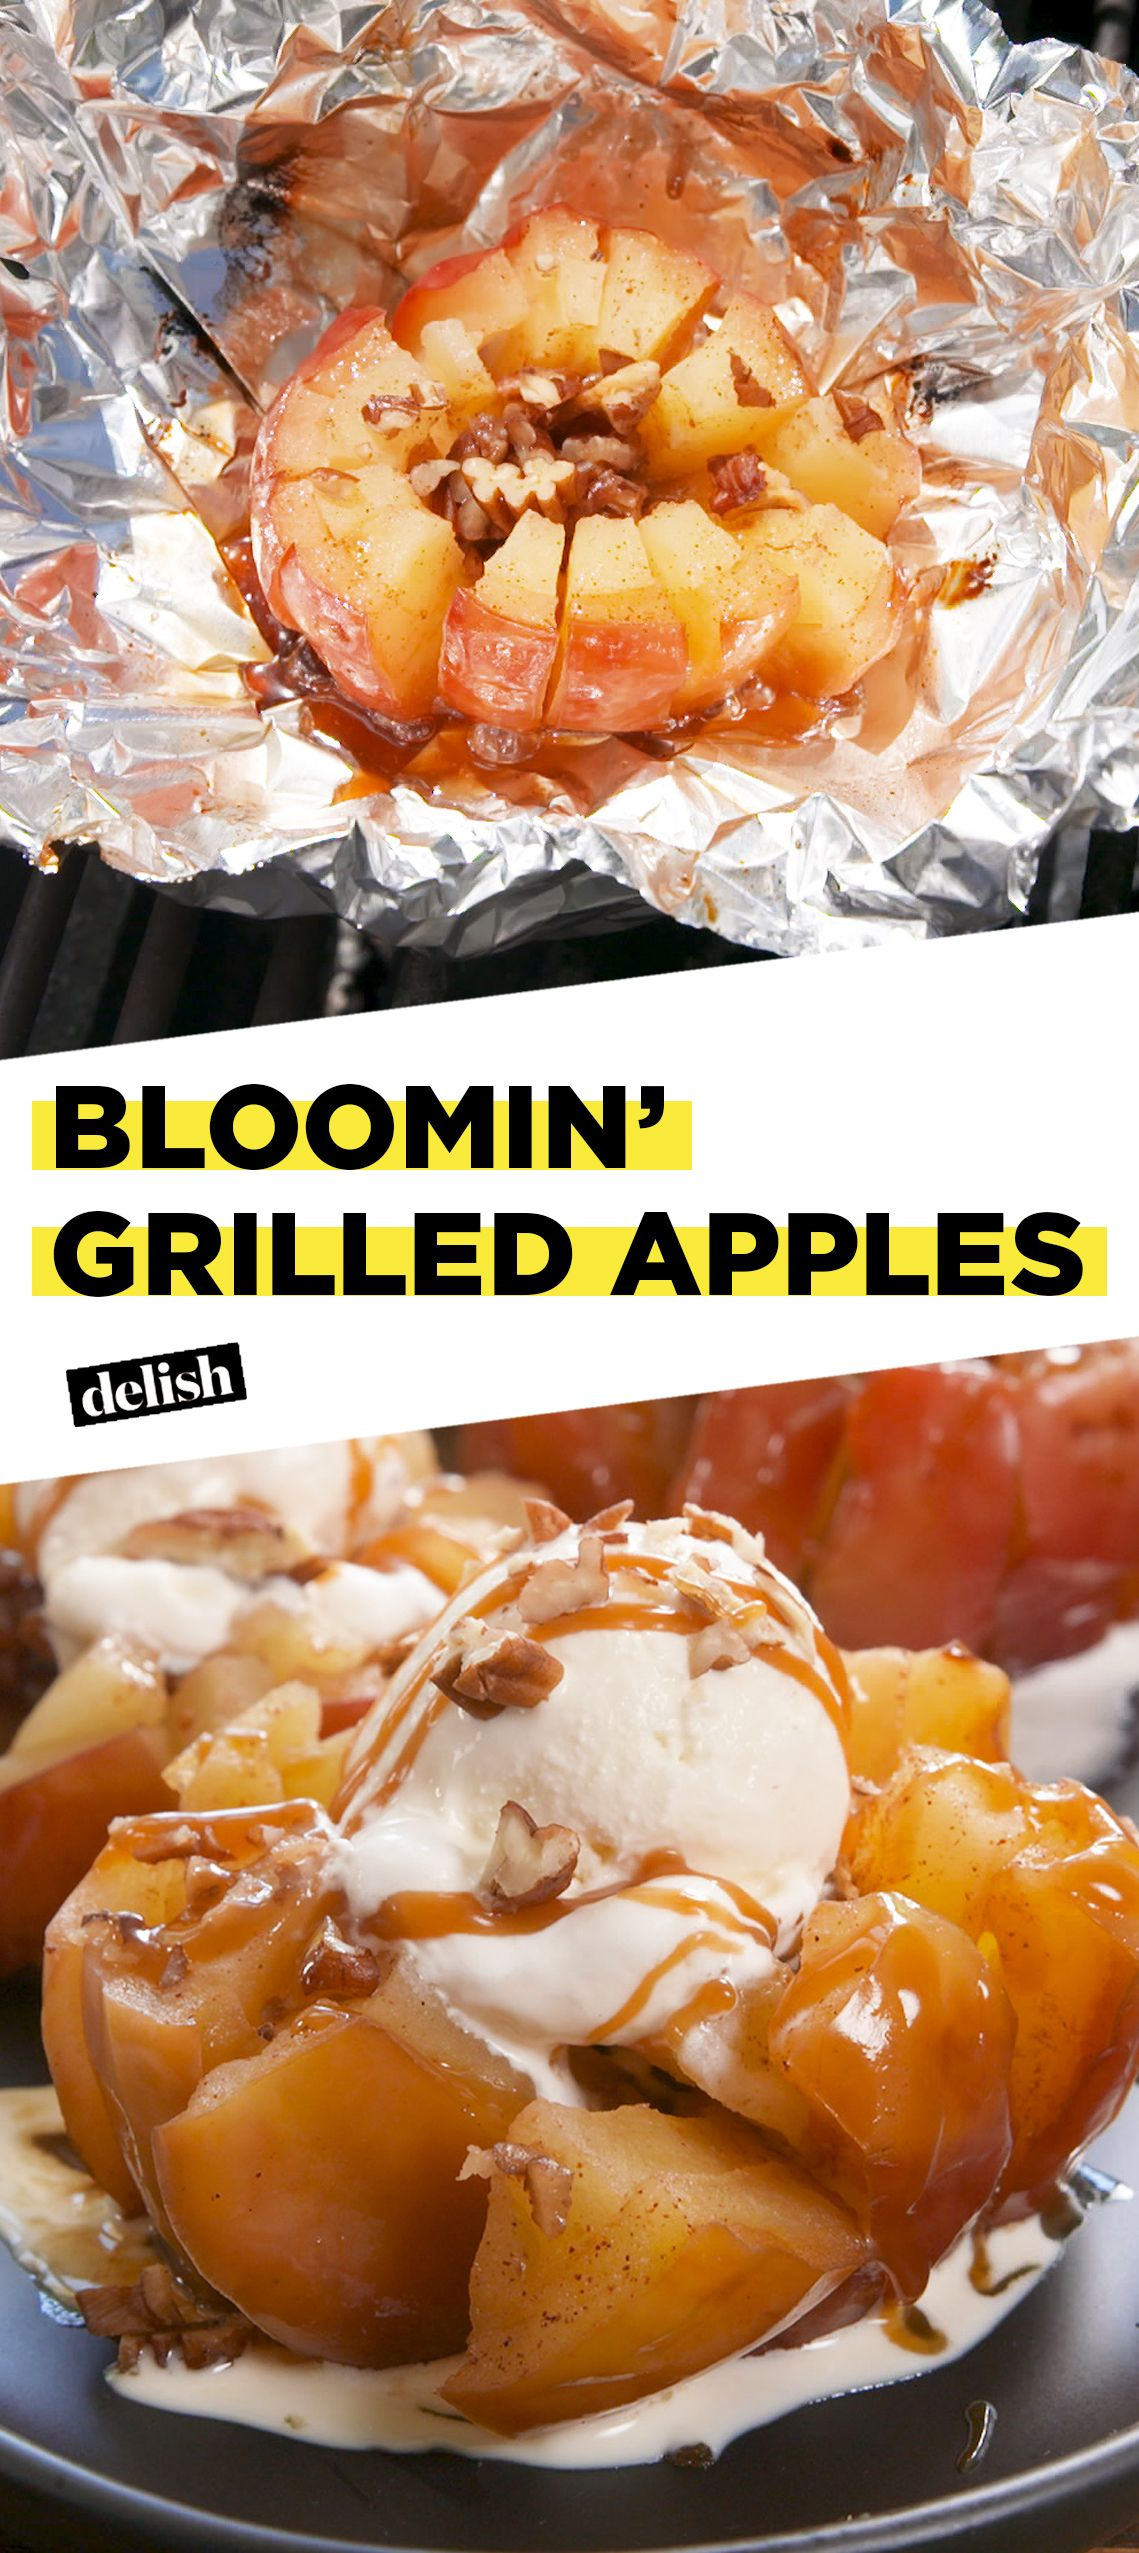 Bloomin' Grilled Apples #grilleddesserts